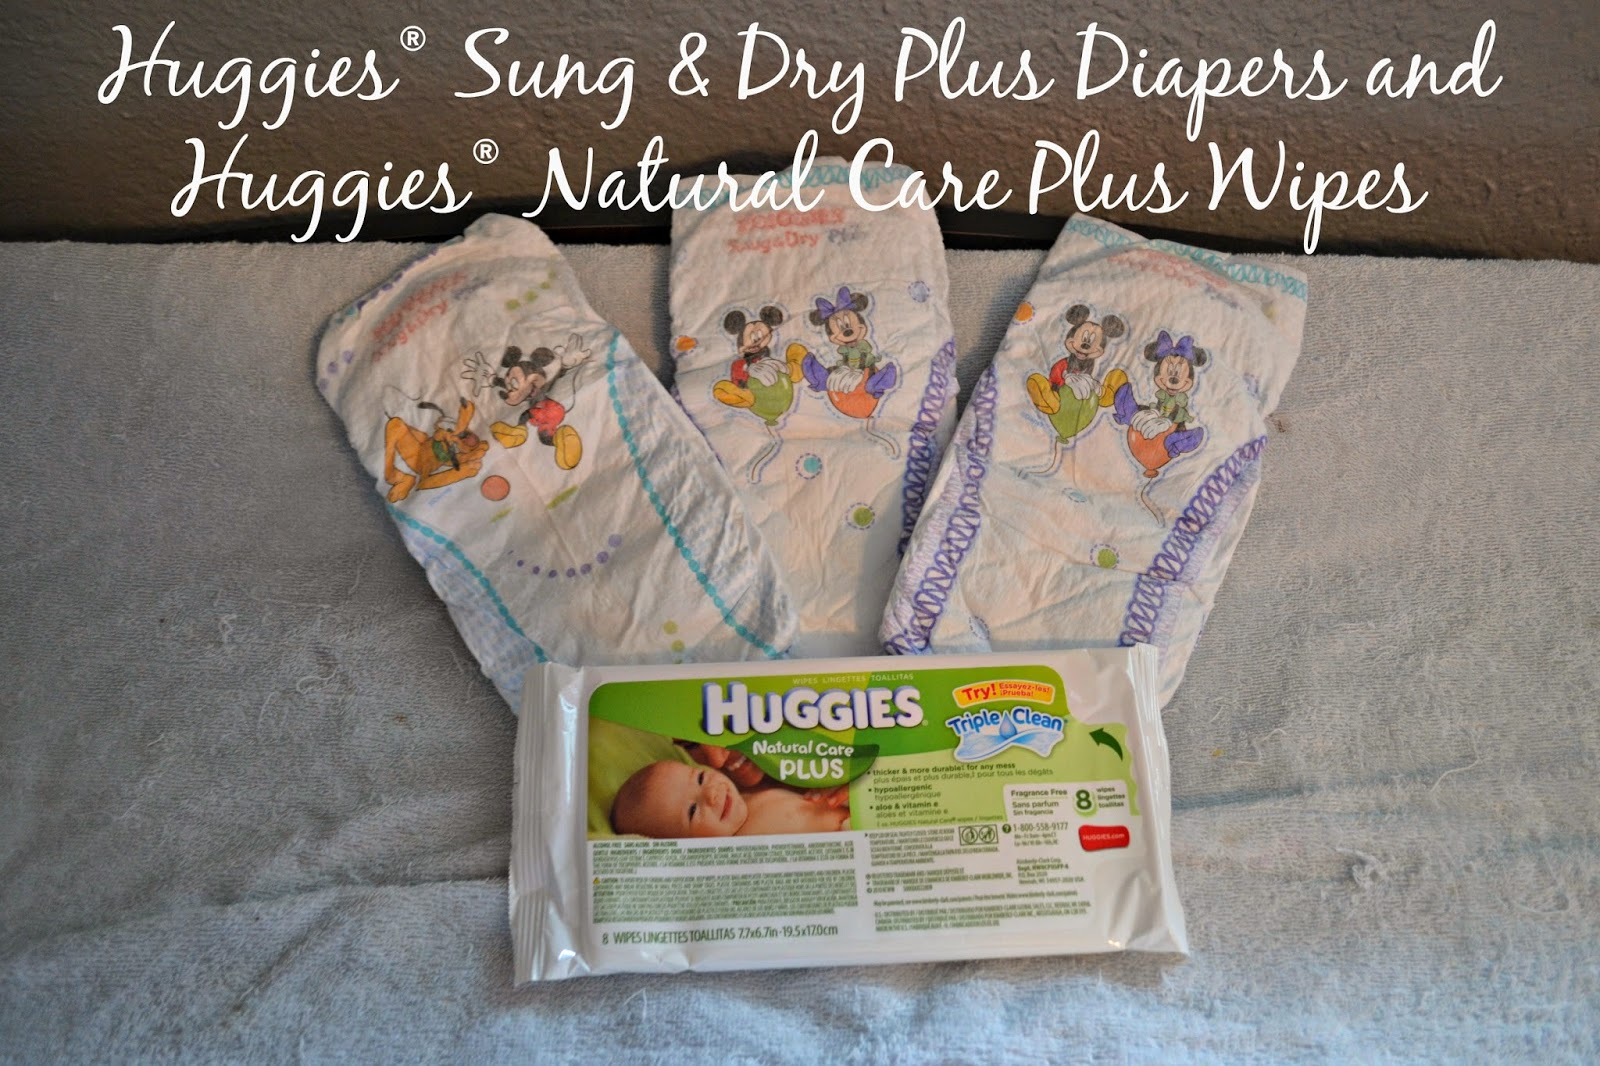 Huggies® Sung & Dry Plus Diapers and Huggies® Natural Care Plus Wipes.  Huggies® Costco #Giveaway #SnugandDryPlus #MC #Sponsored